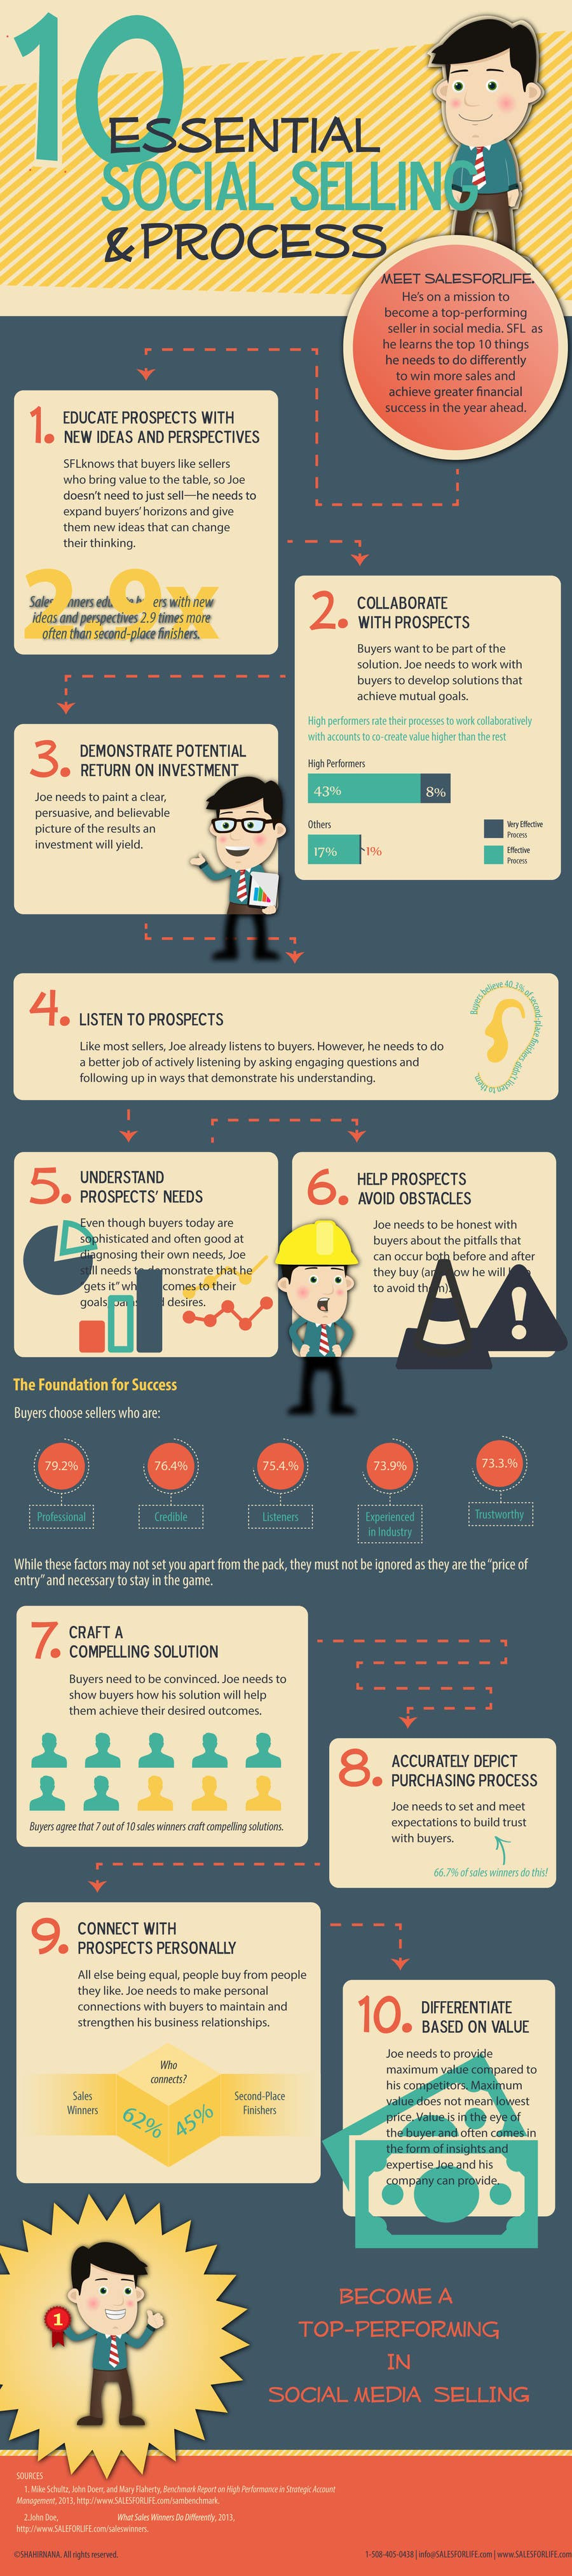 Konkurrenceindlæg #                                        1                                      for                                         Infographic about Social Selling Skills & Process: Flat Design